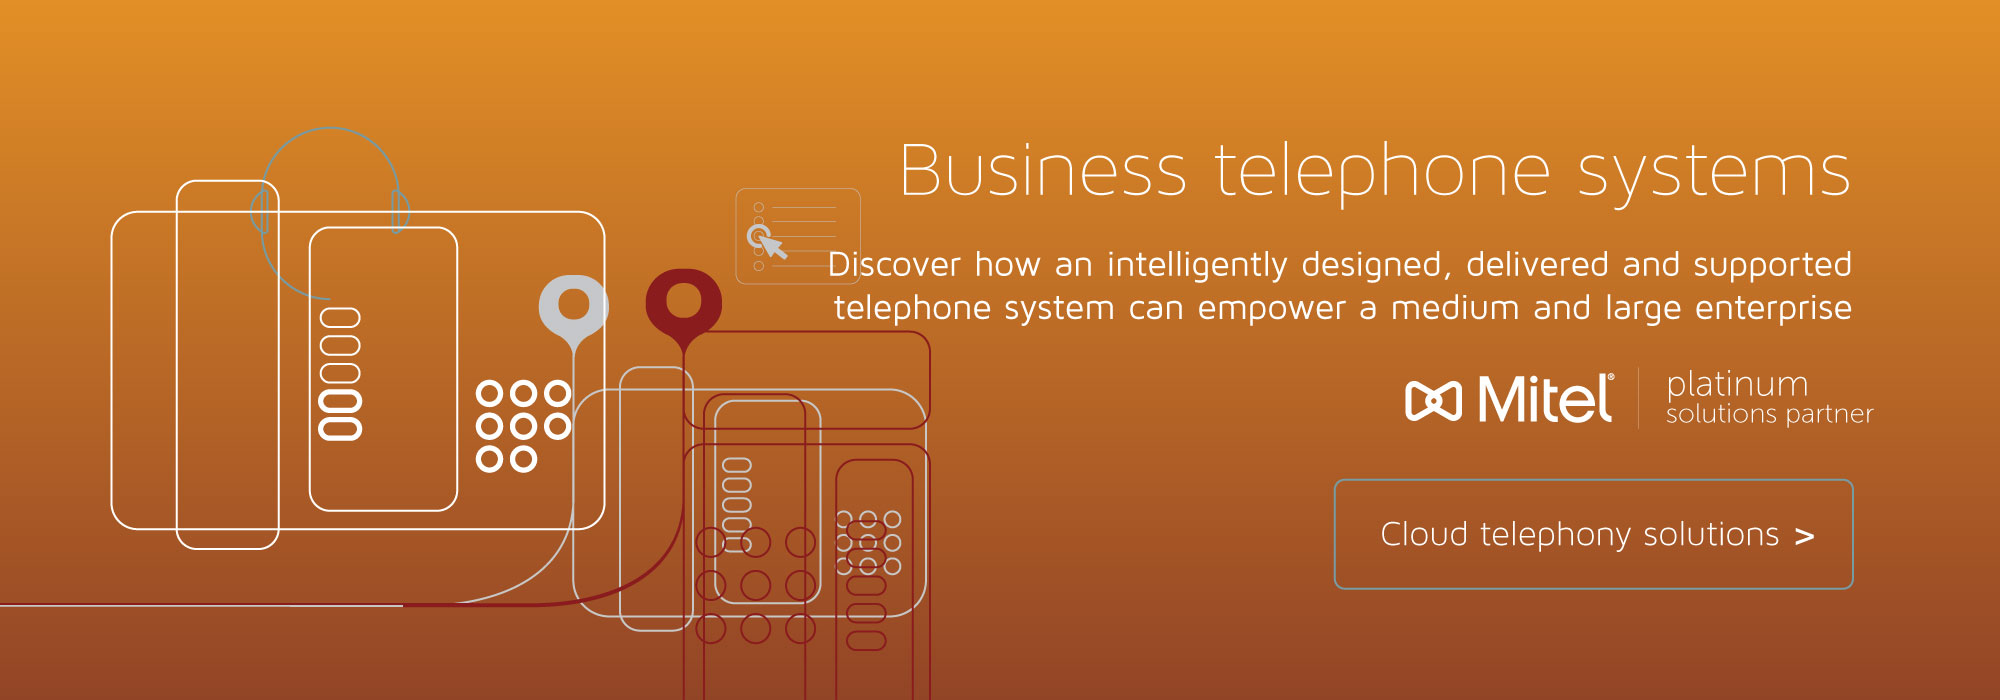 Mitel Platinum Partner Cloud Telephony